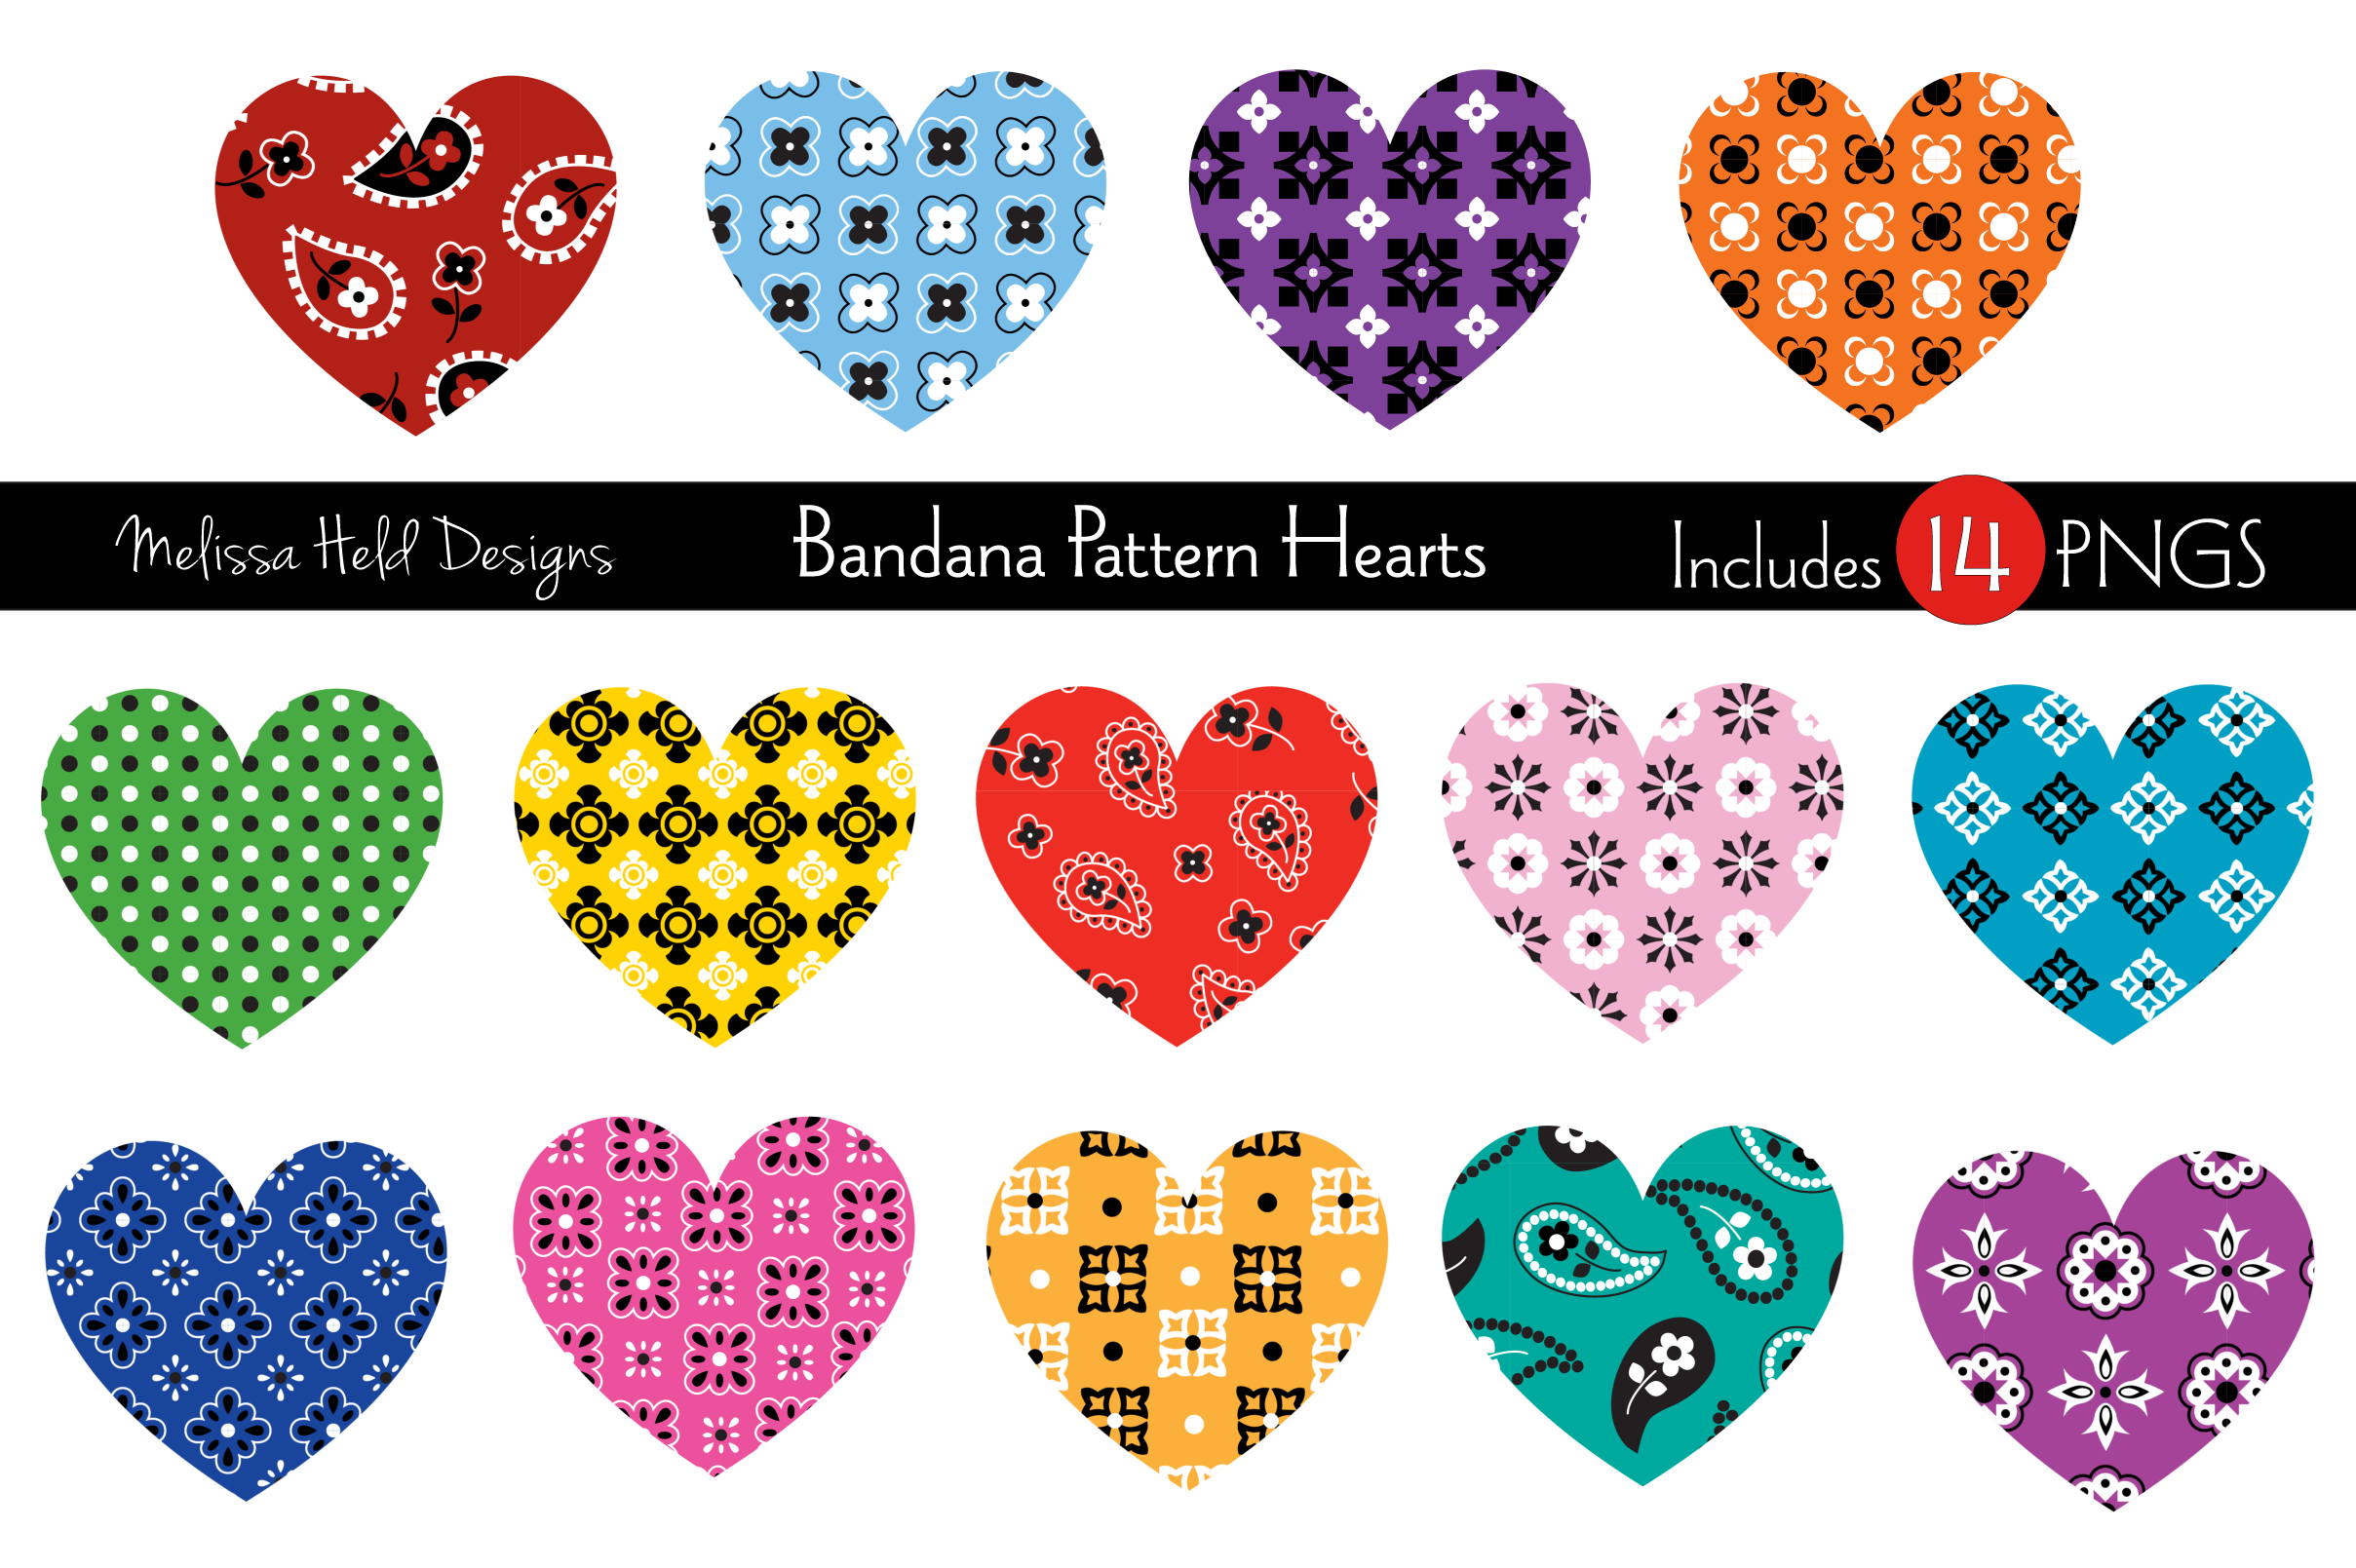 Download Free Bandana Pattern Hearts Vector Graphics Grafik Von Melissa Held for Cricut Explore, Silhouette and other cutting machines.